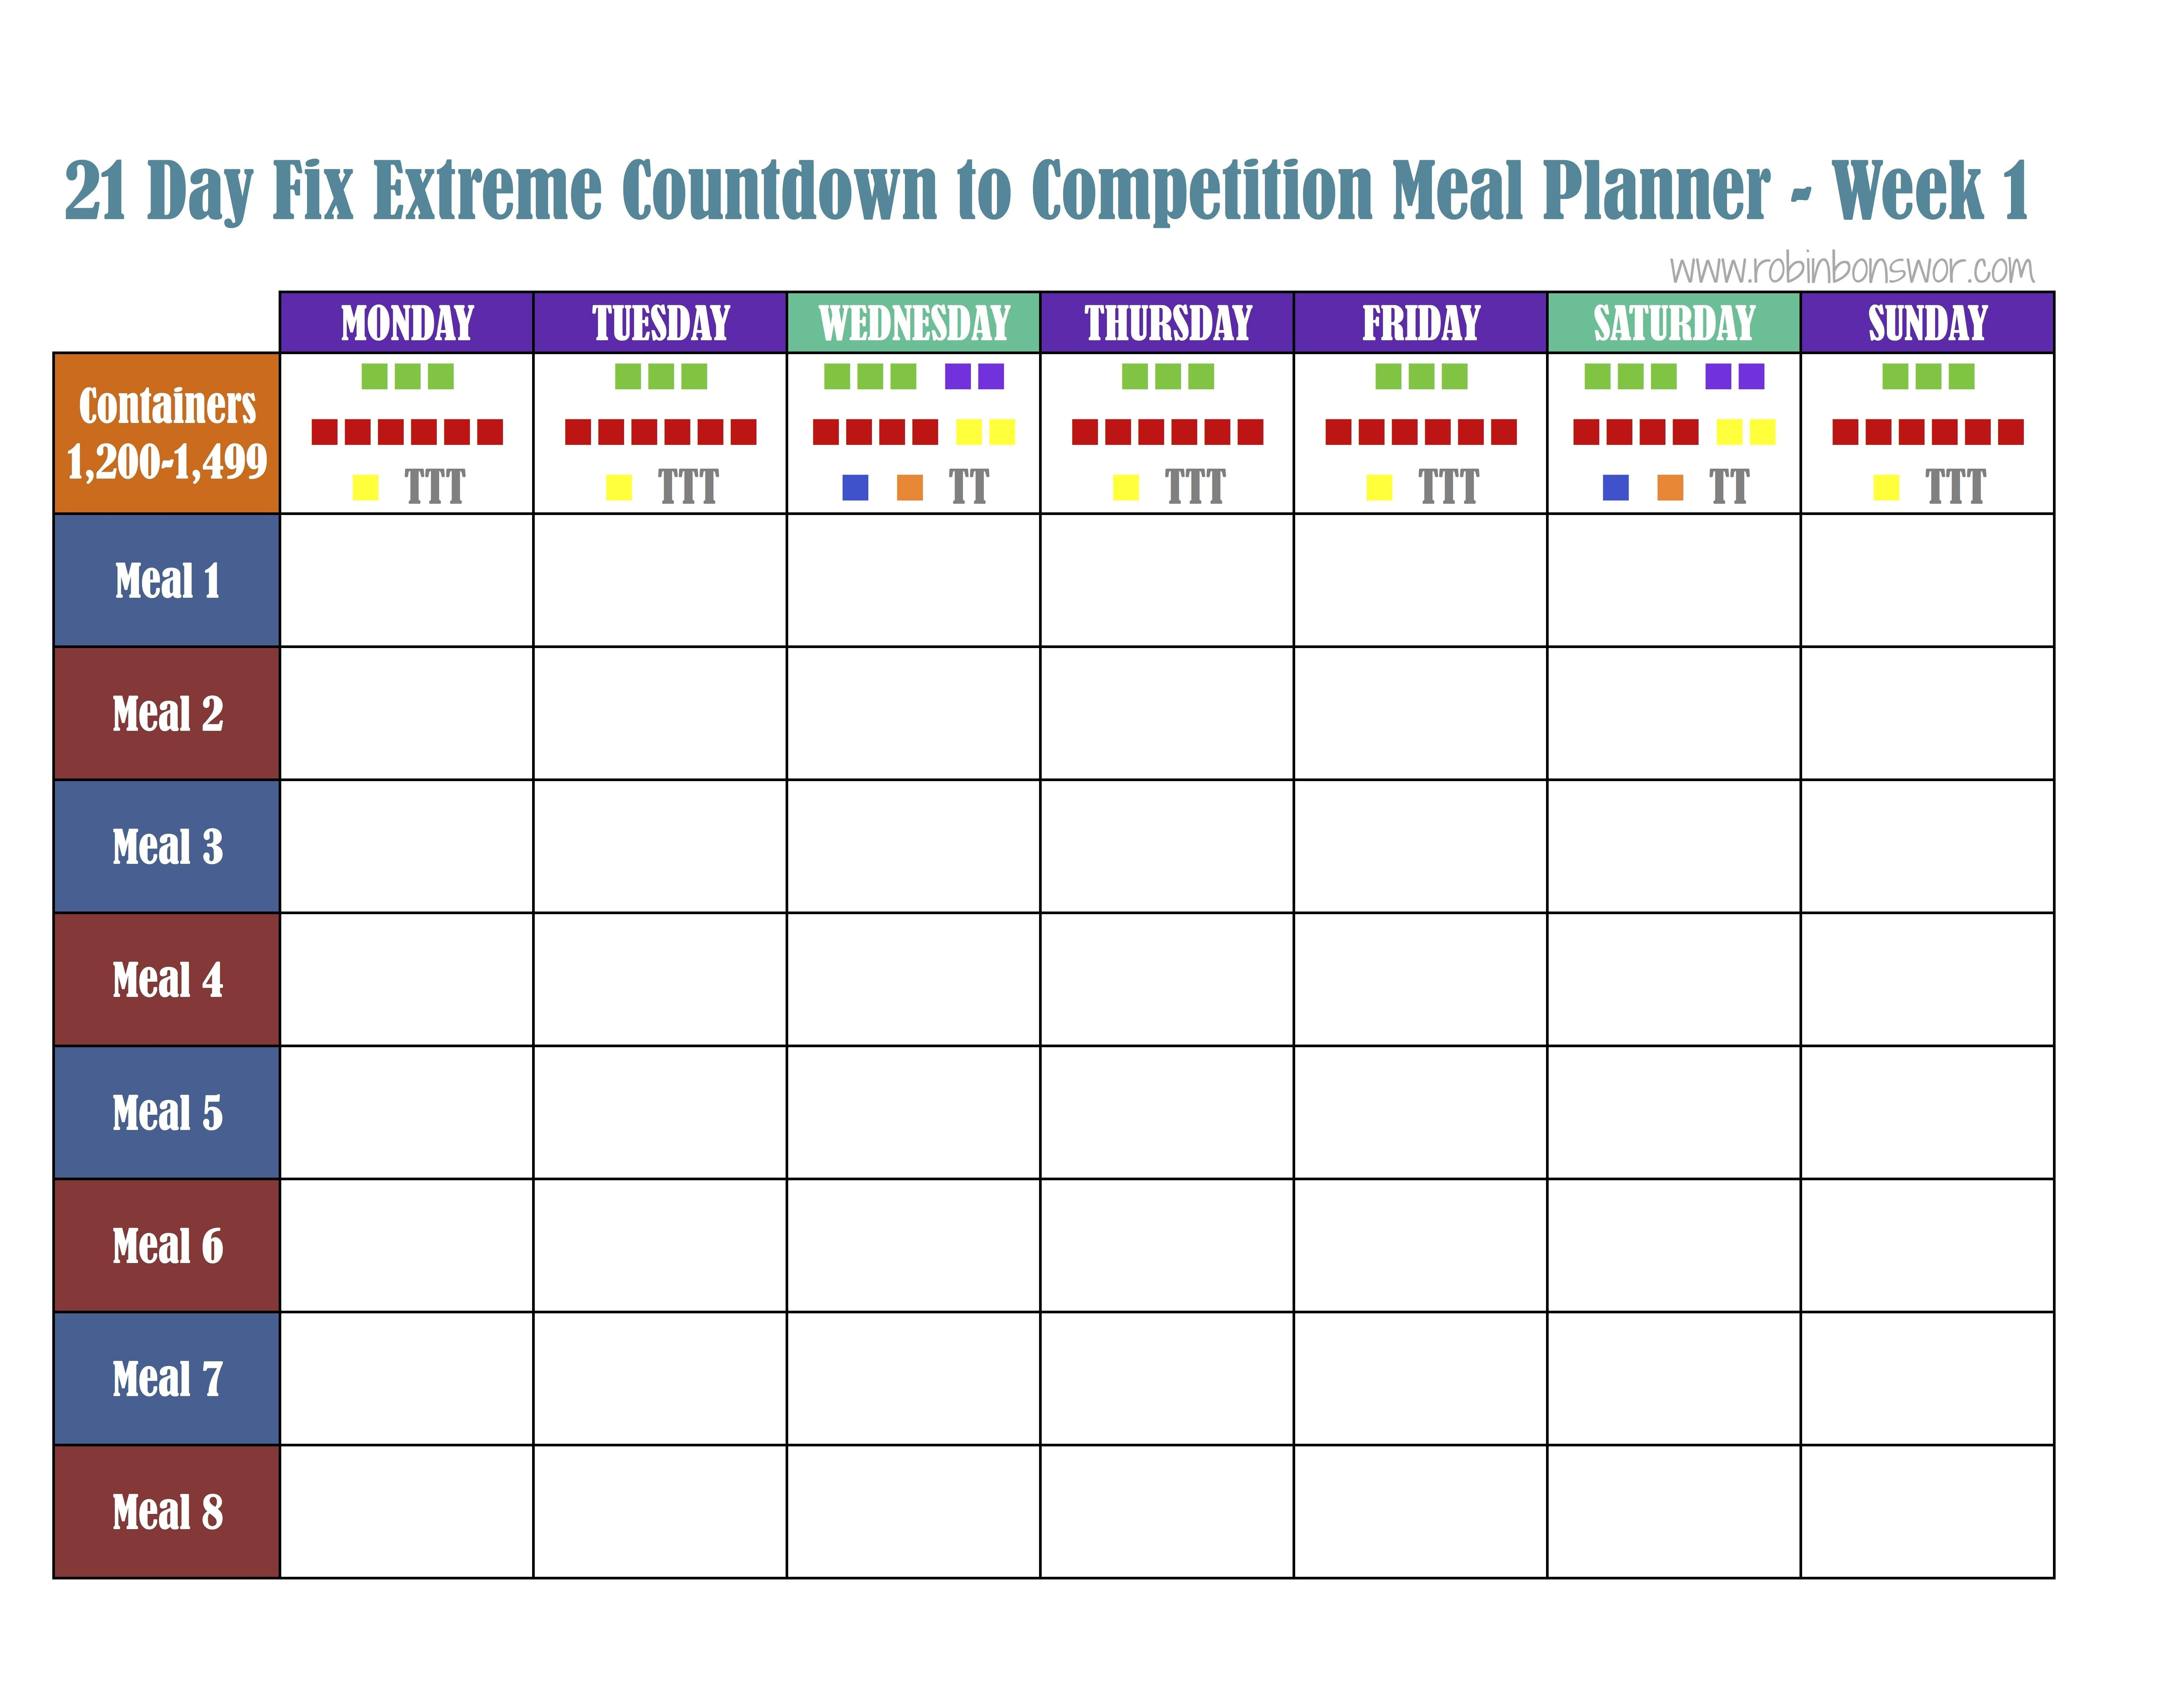 13 Day Fix Meal Plan Template Excel One Checklist That You Should